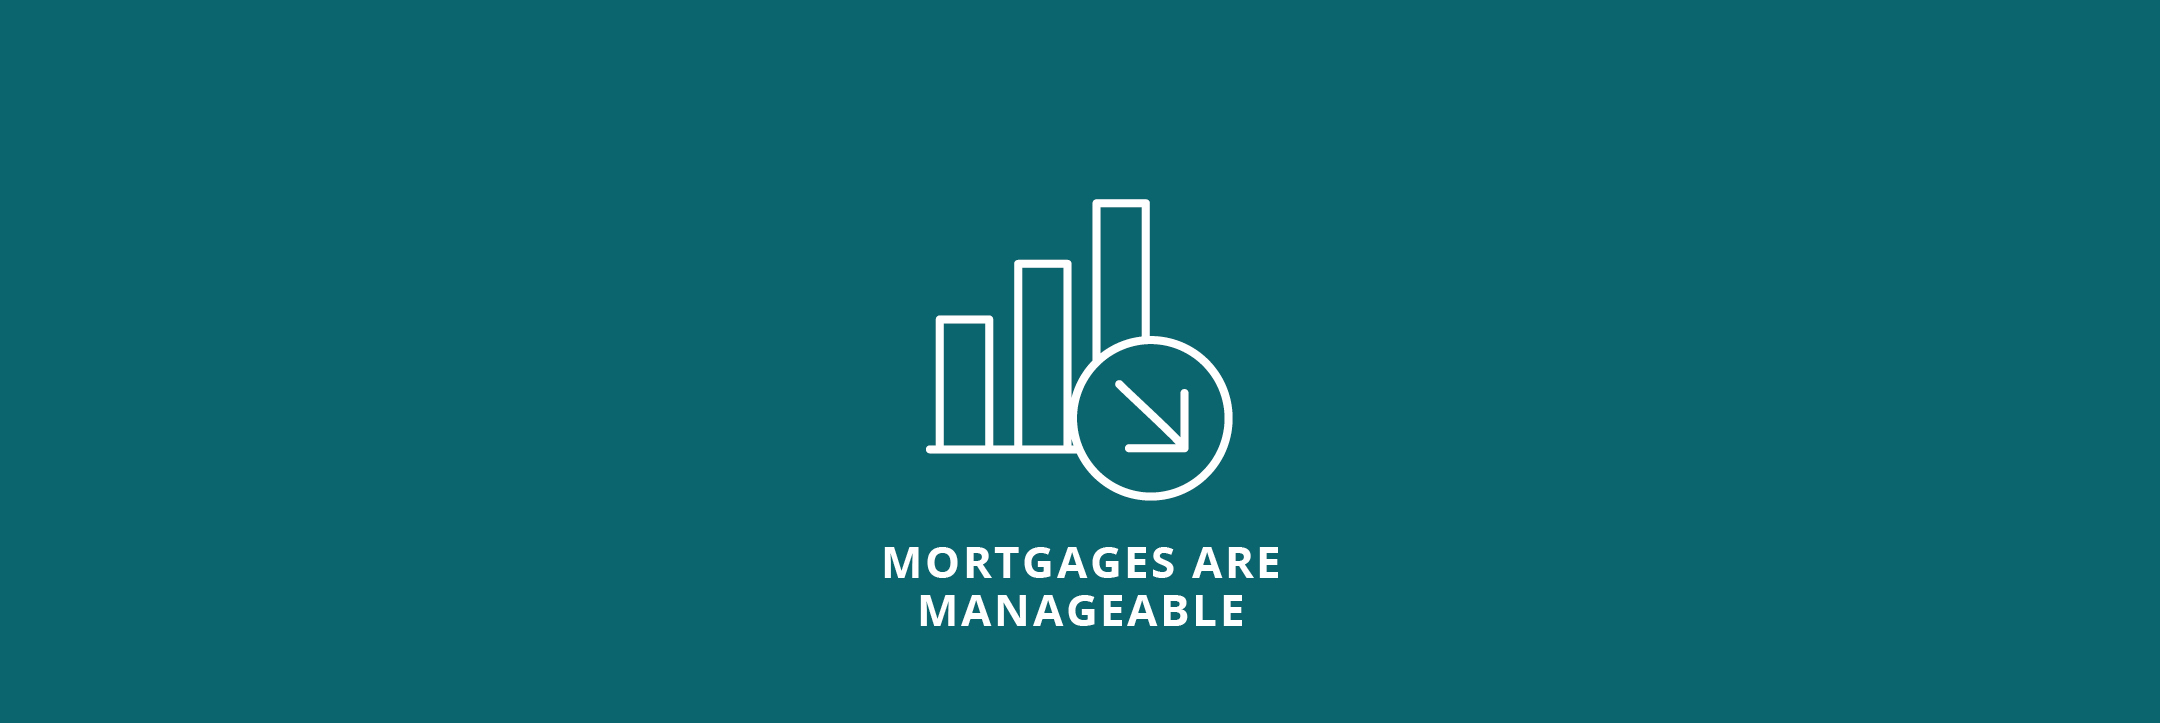 Mortgages Are Manageable